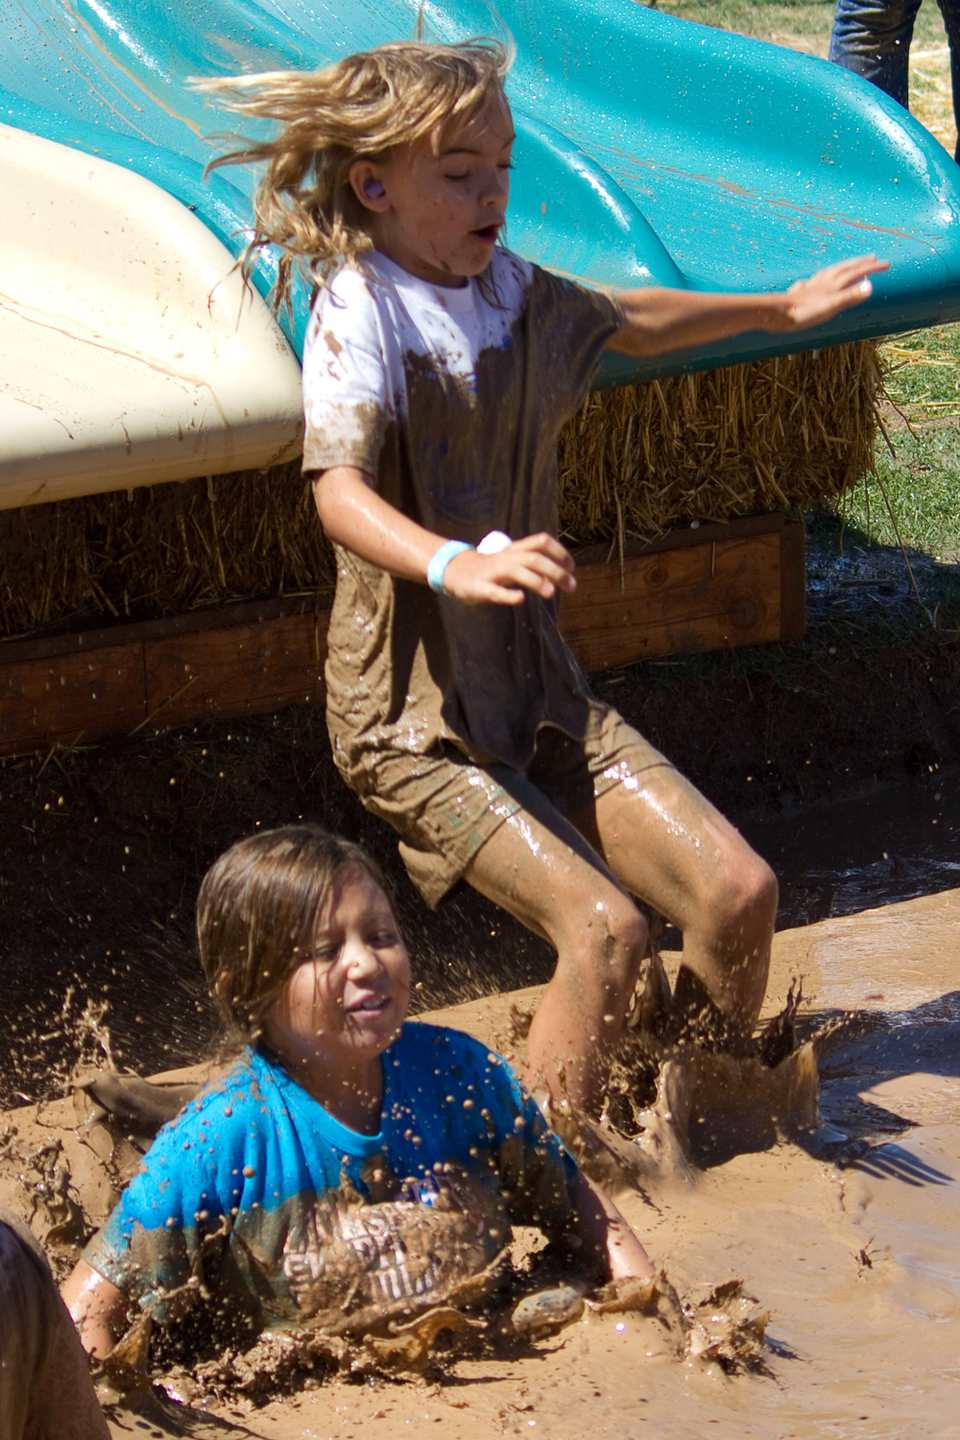 mighty-mud_1000.jpg